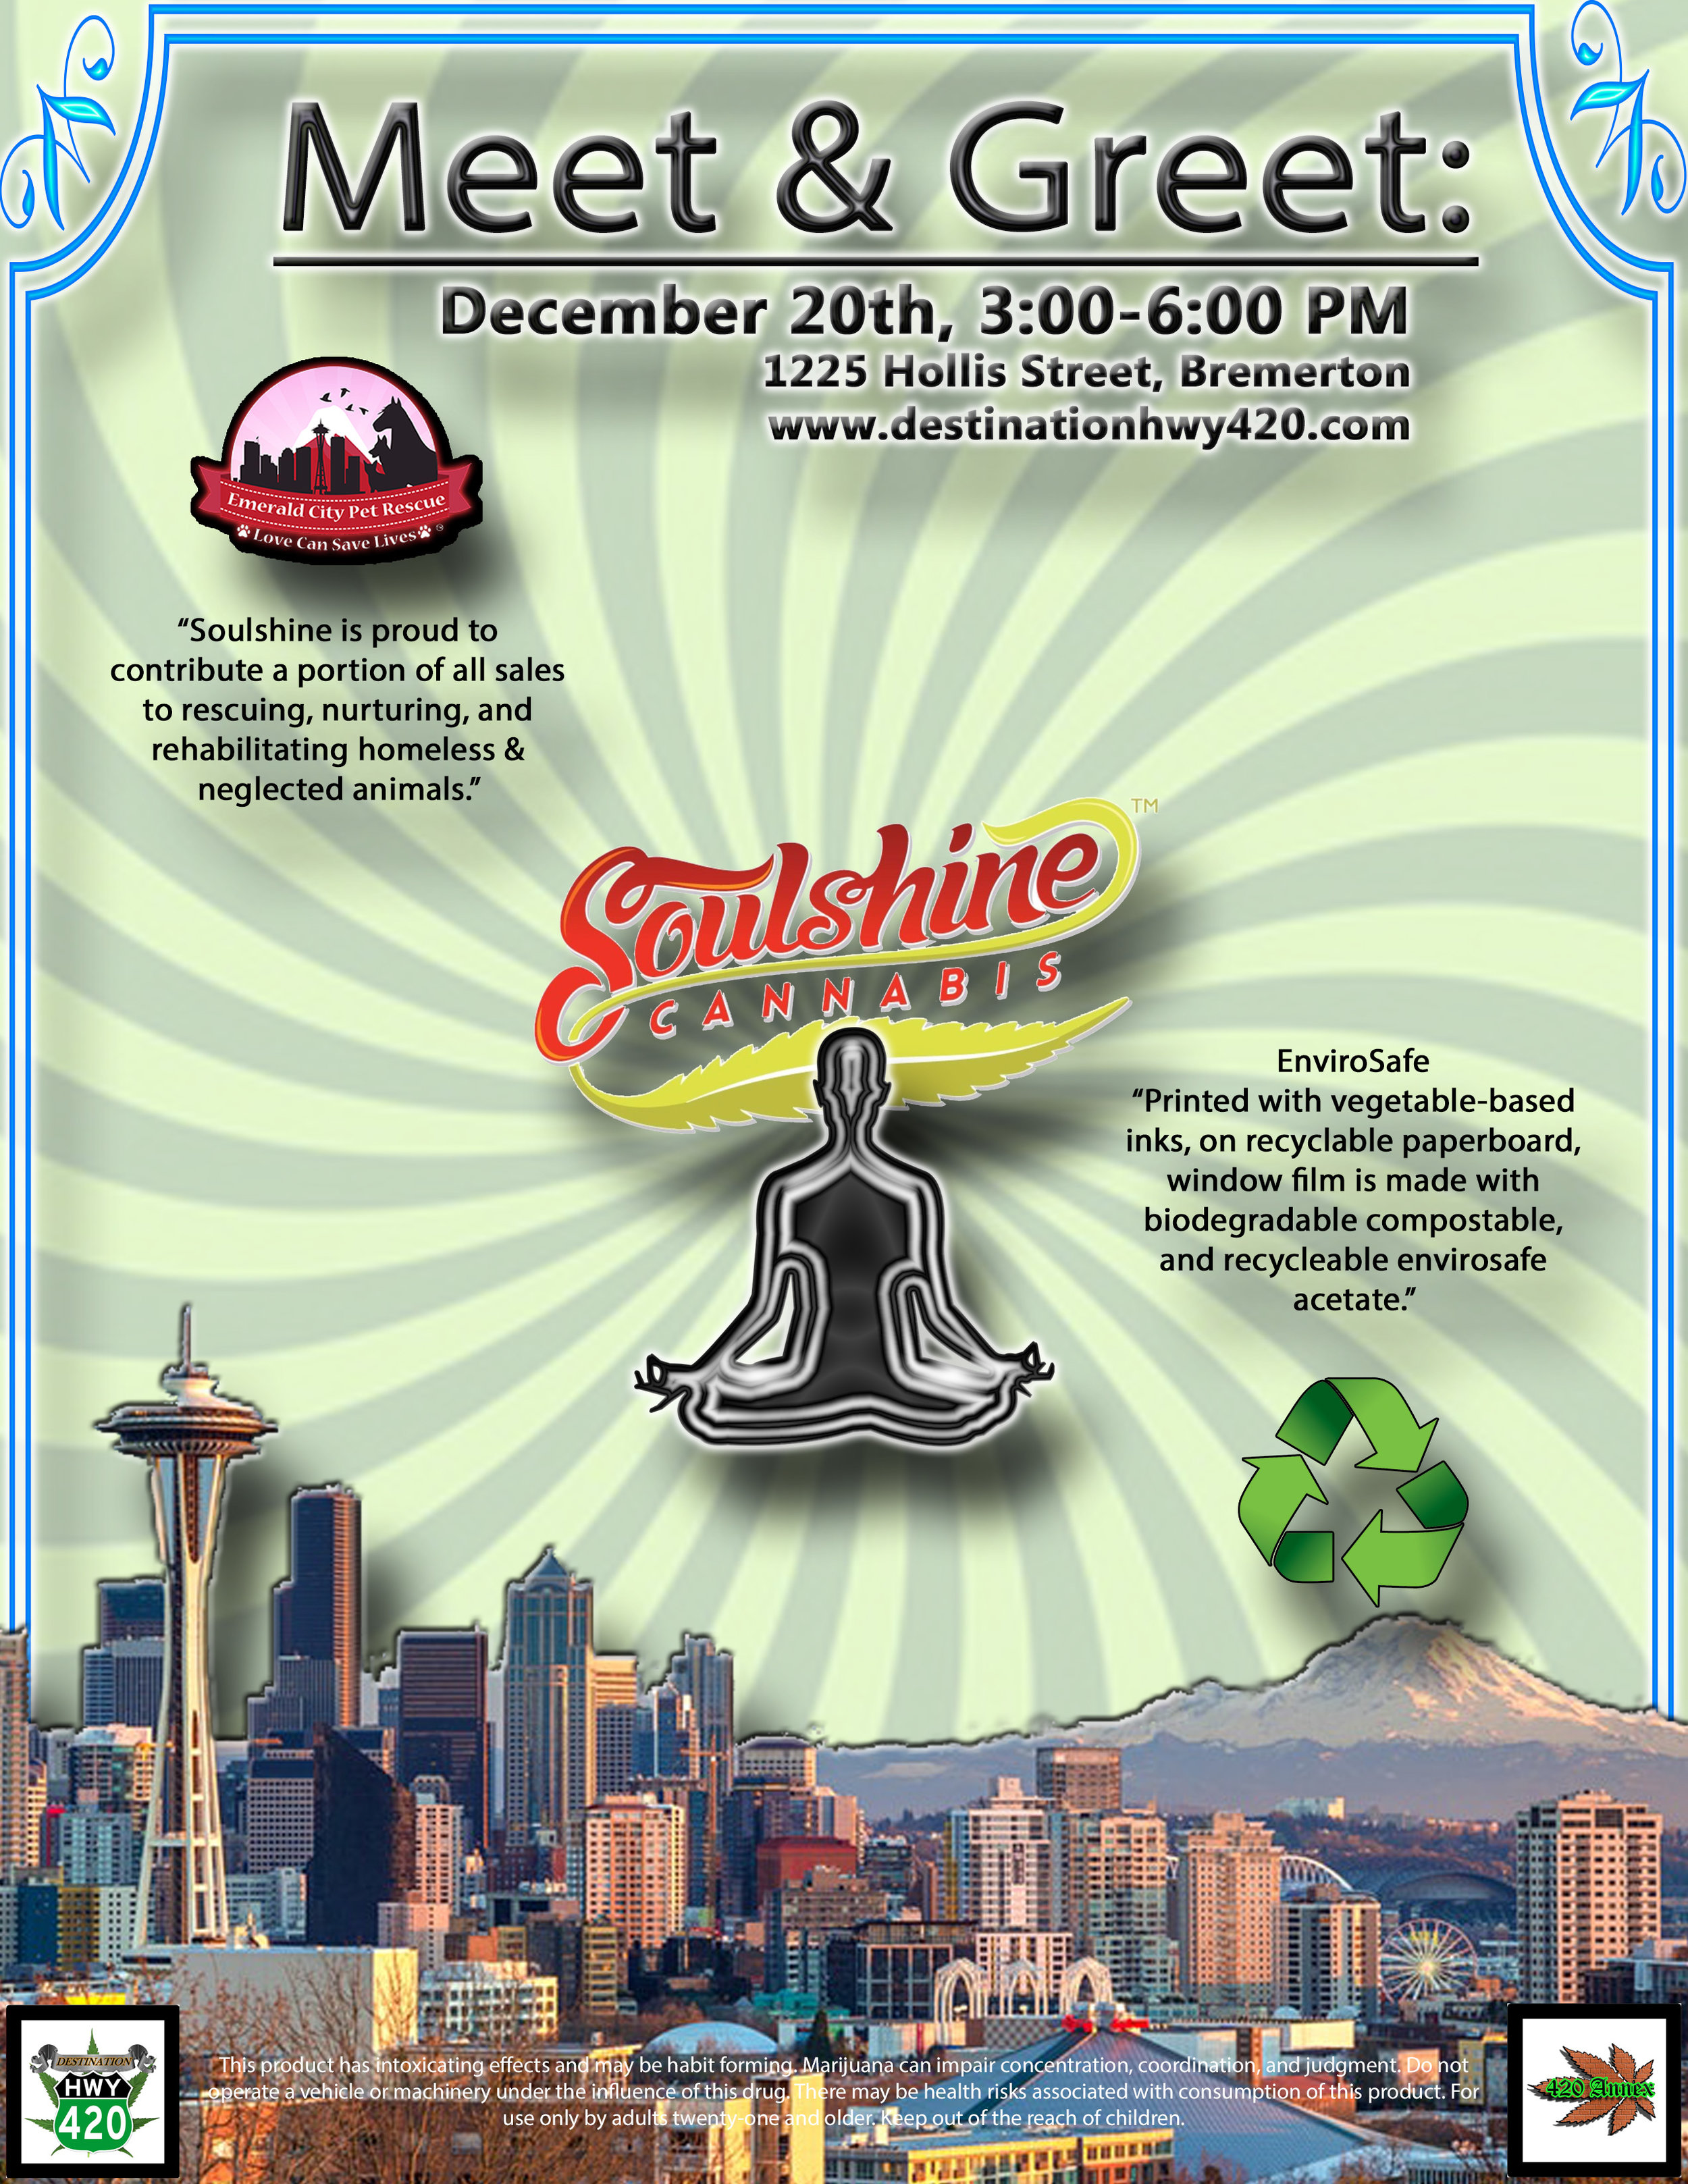 Soulshine Cannabis is an environmentally conscious top shelf marijuana producer/processor located in Renton, WA. Soulshine will be at Destination HWY 420 this Thursday for a Meet & Greet. Come on down and meet the Soulshine team and pick up some of their products for super low prices.